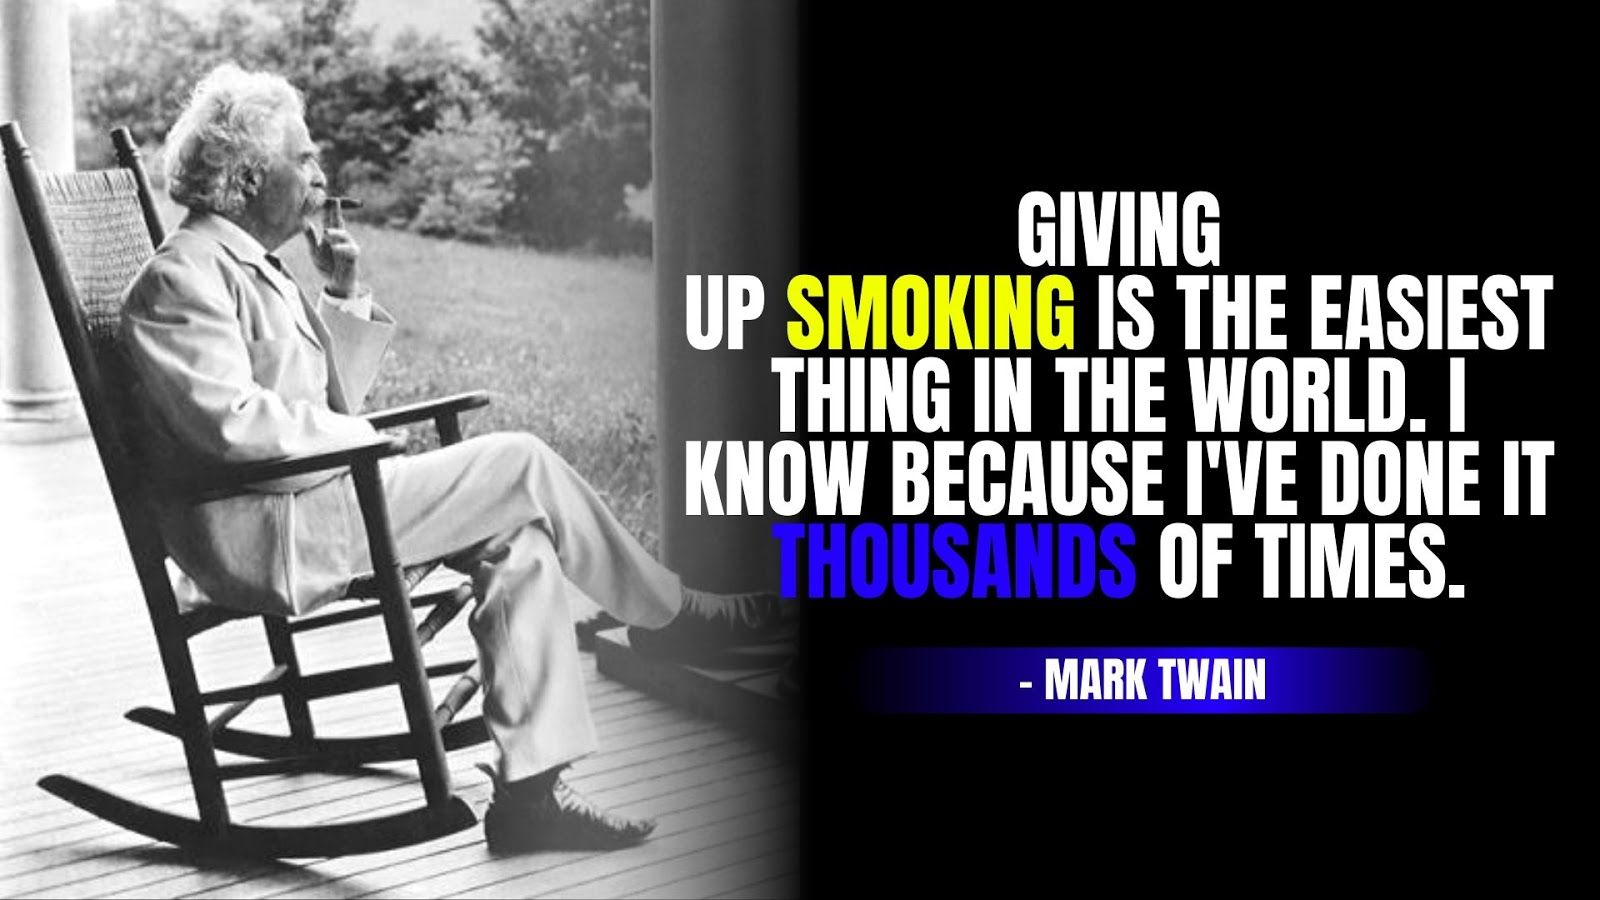 Mark Twain Quotes About Smoking, Mark Twain Quotes on Life